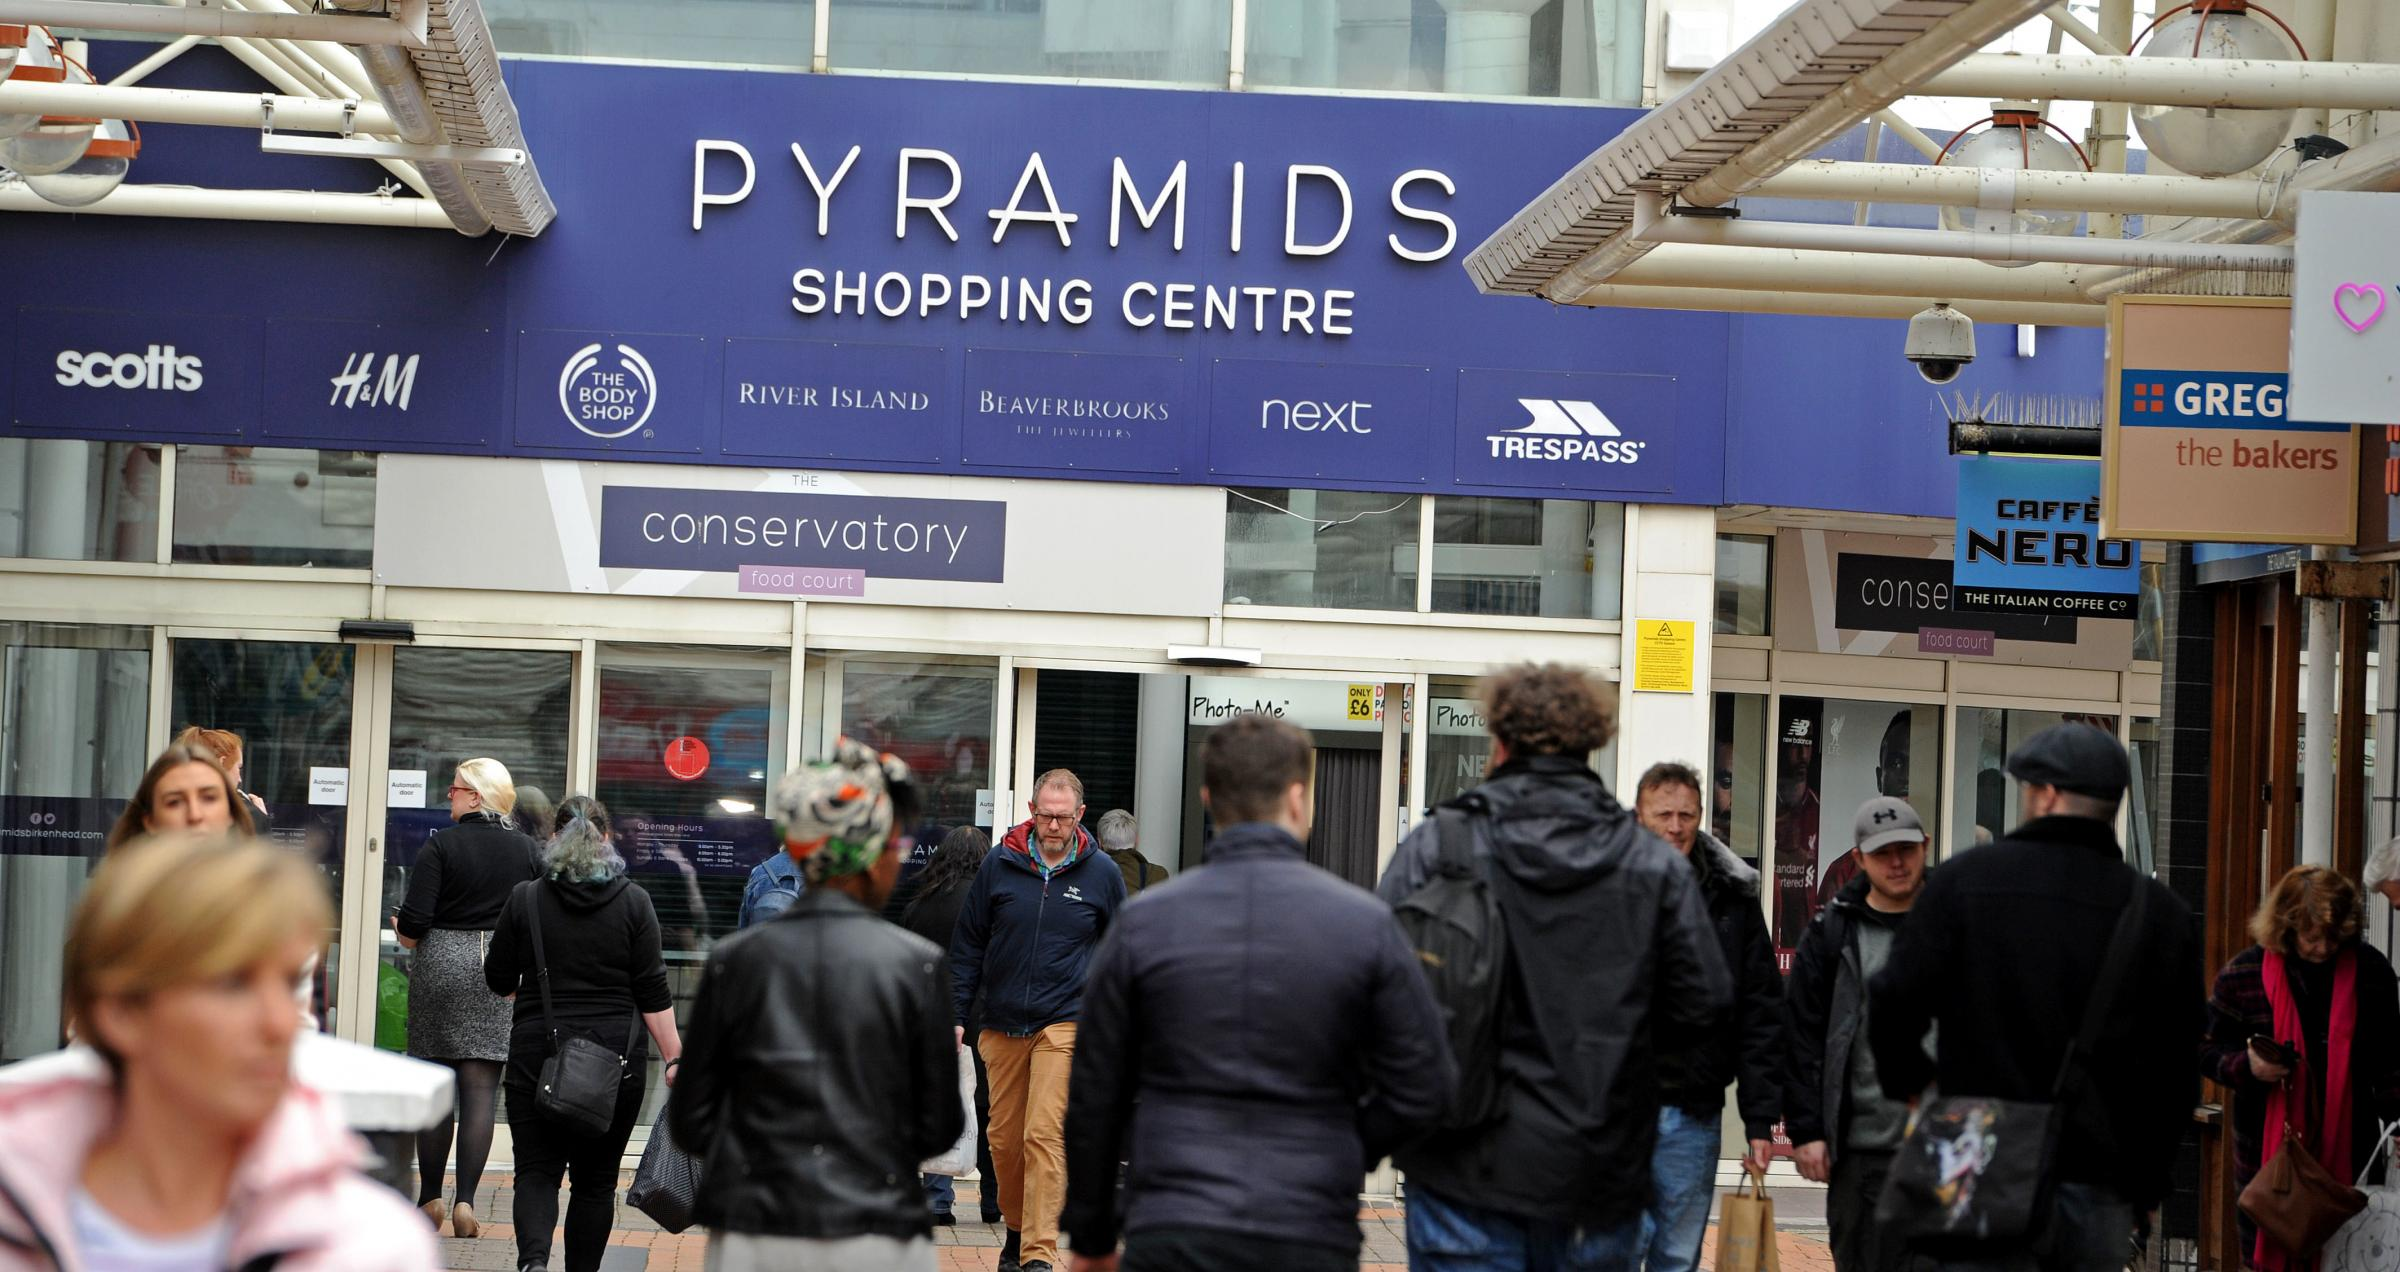 Party time for Pyramids shopping centre's 30th anniversary